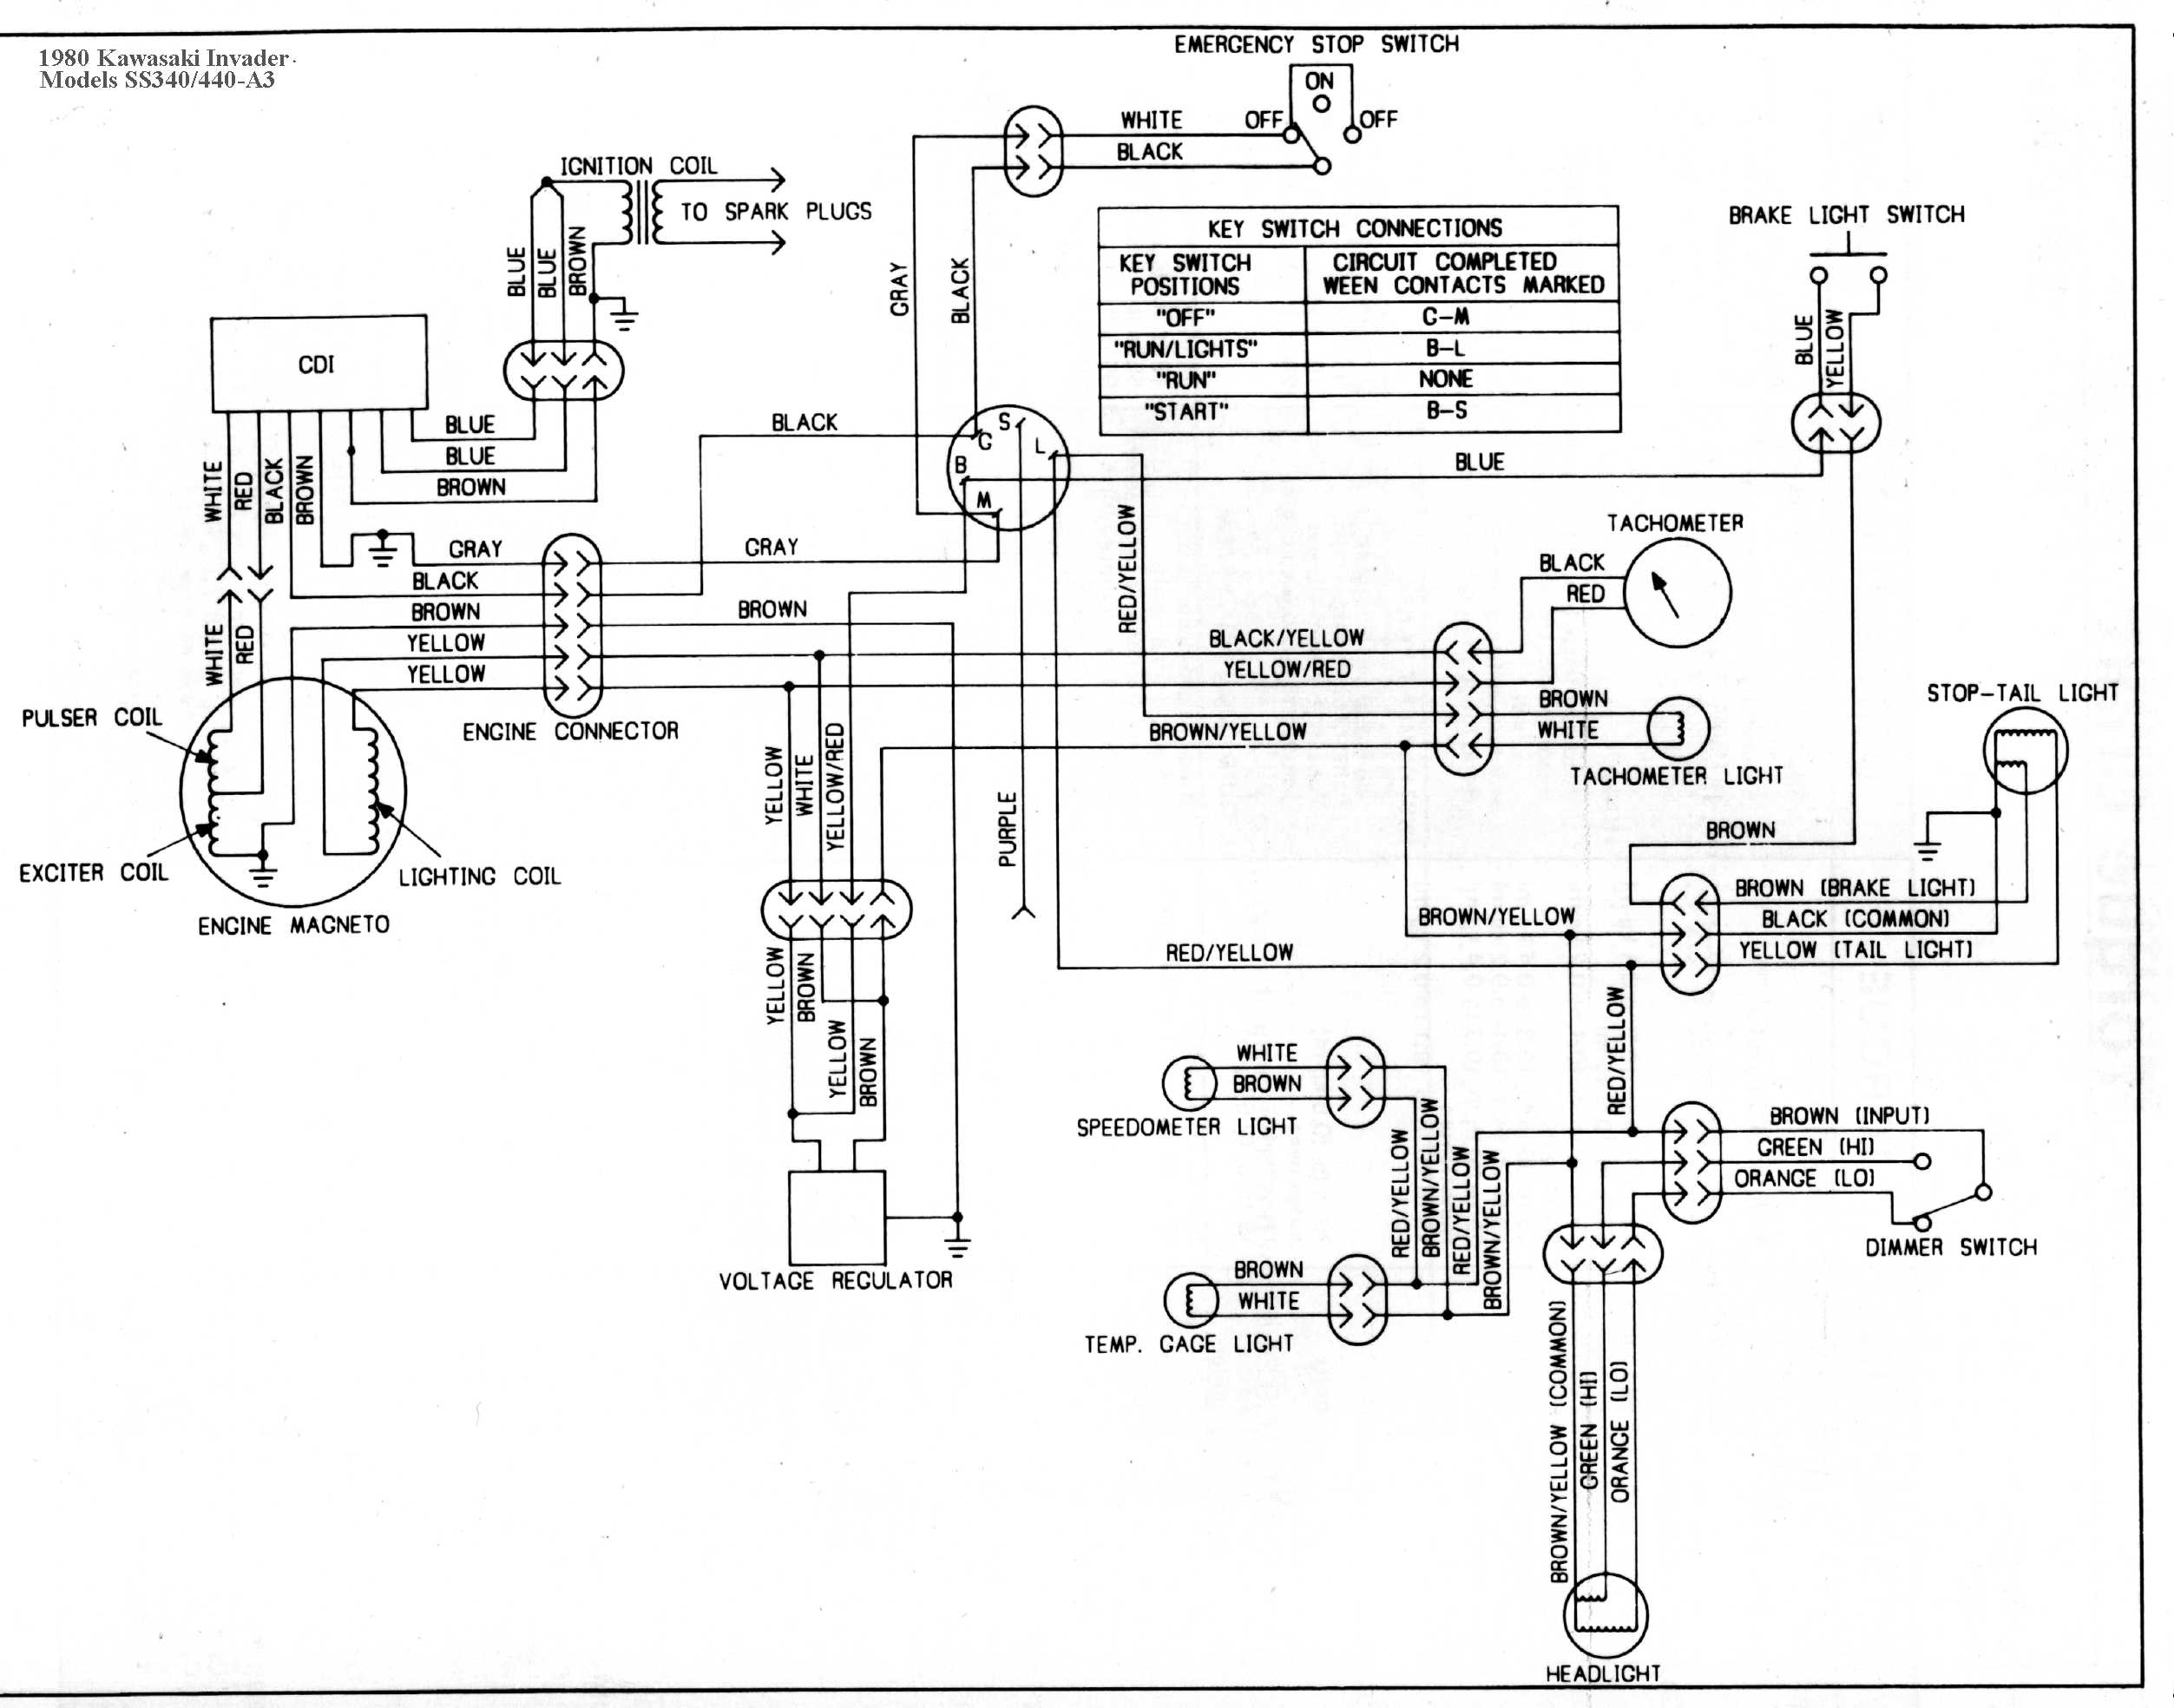 ss340a3 kawasaki invader snowmobile wiring diagrams invader wiring diagram at readyjetset.co